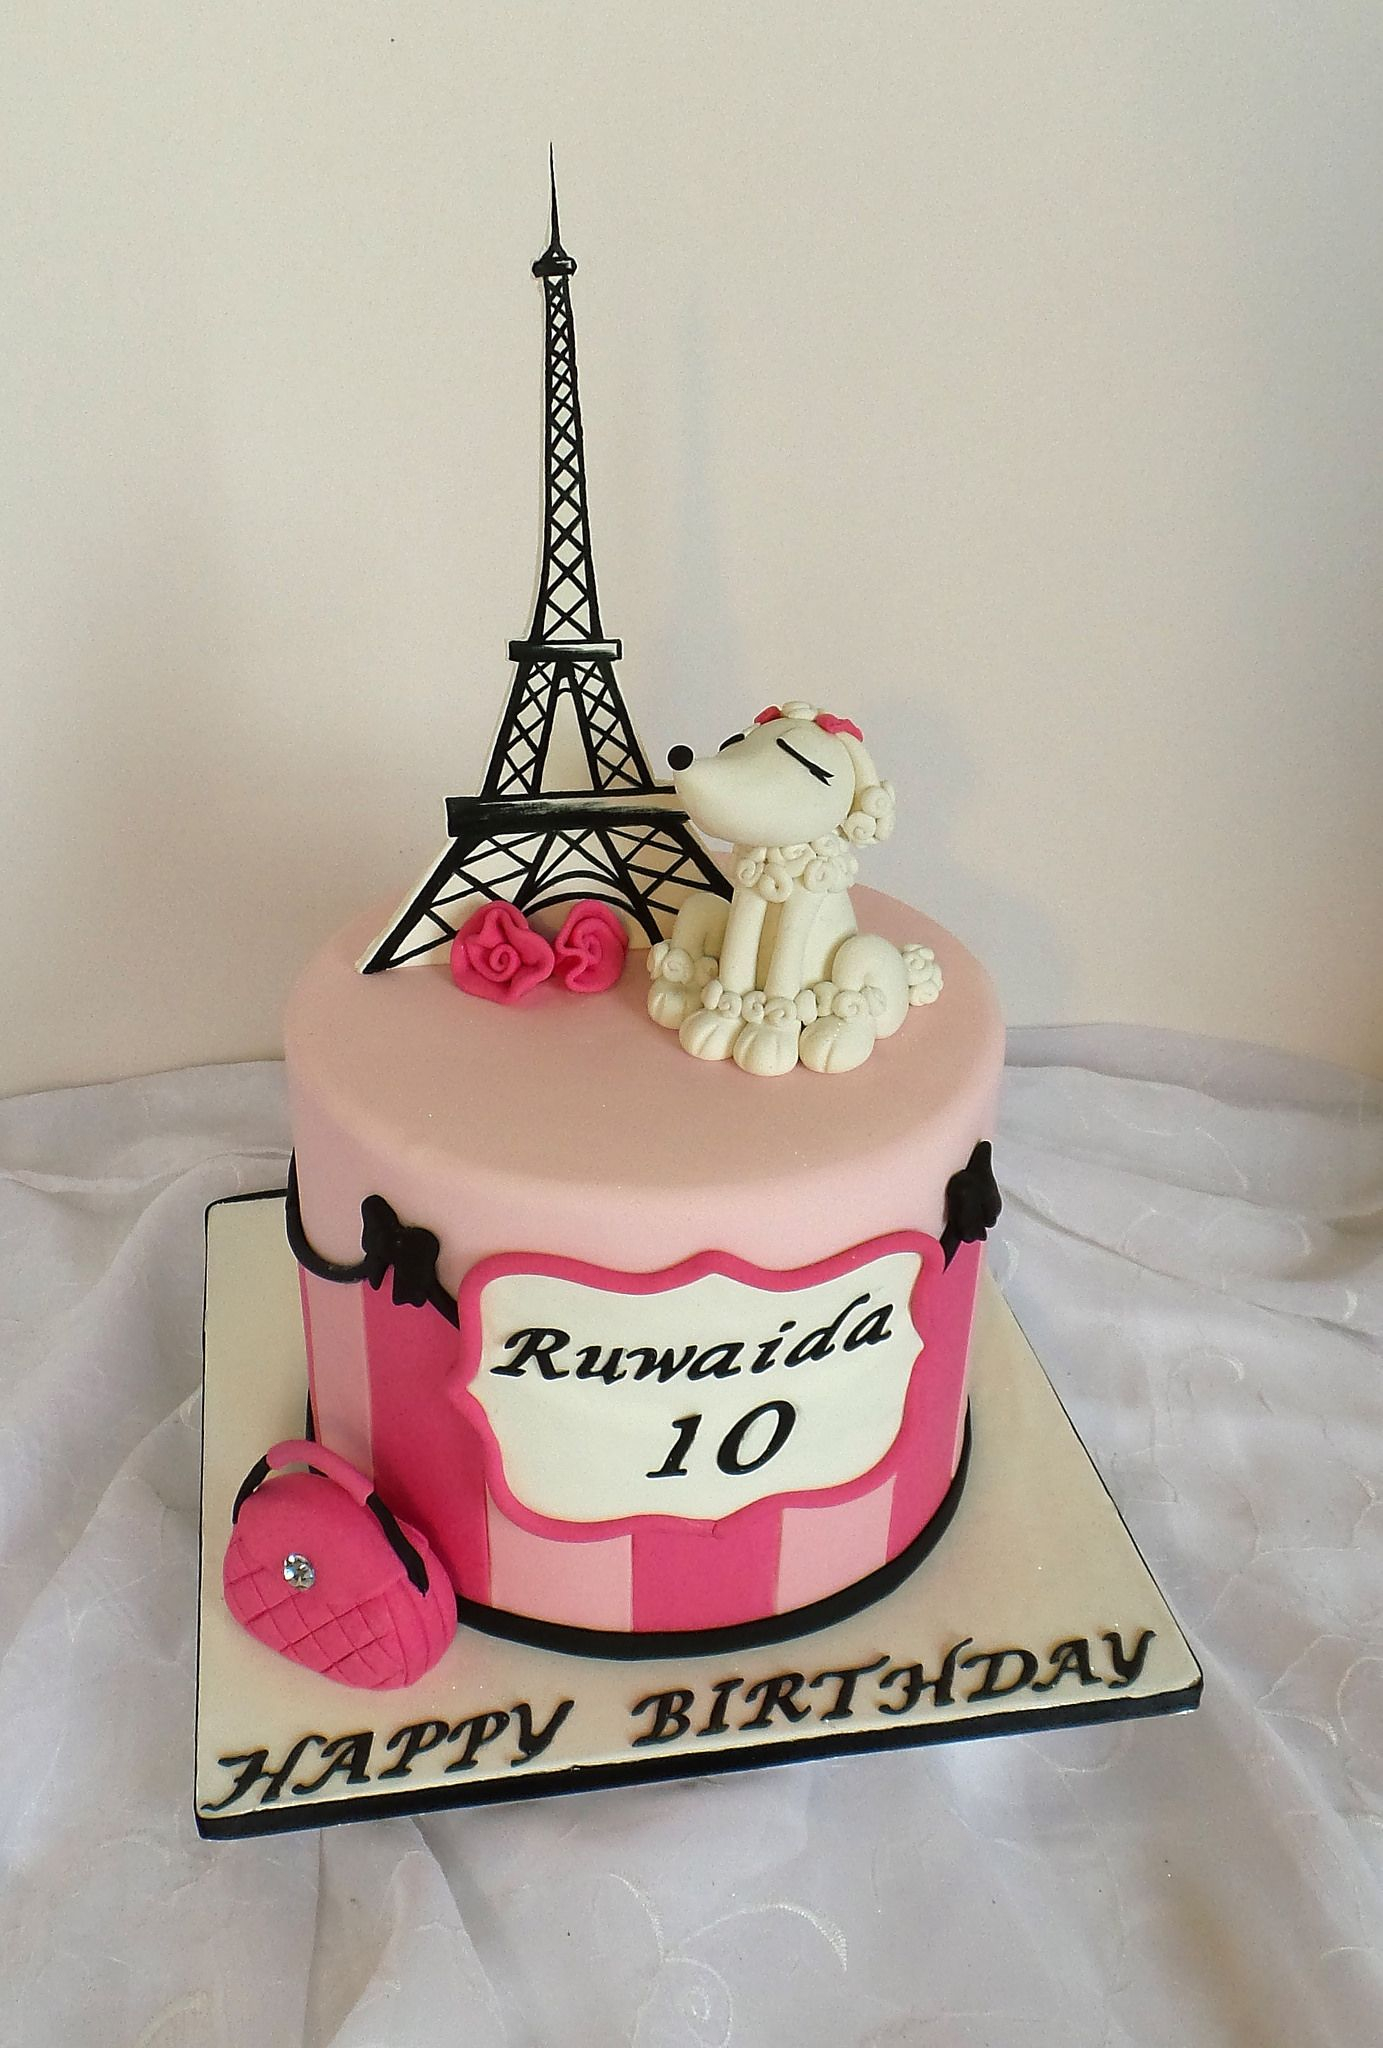 Paris Birthday Cake Paris Themed Birthday Cake With Fondant Poodle Handbag And Eiffel